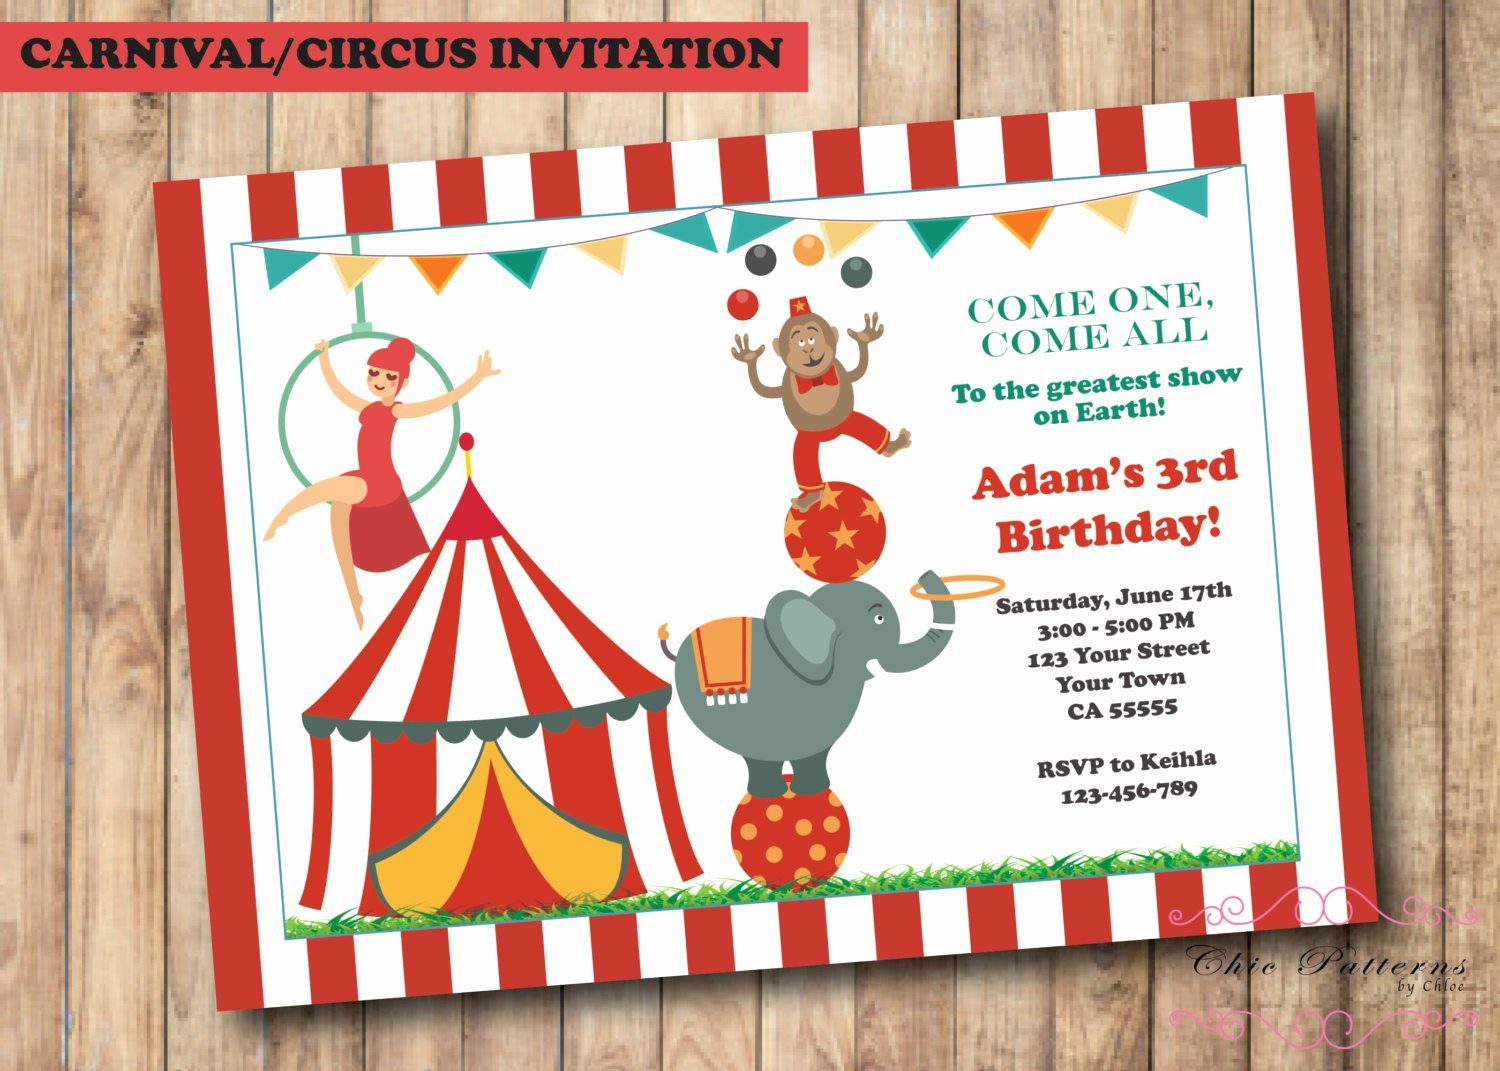 Carnival Ticket Invitation Beautiful Carnival Invitations Circus Invitations Ticket Invitations